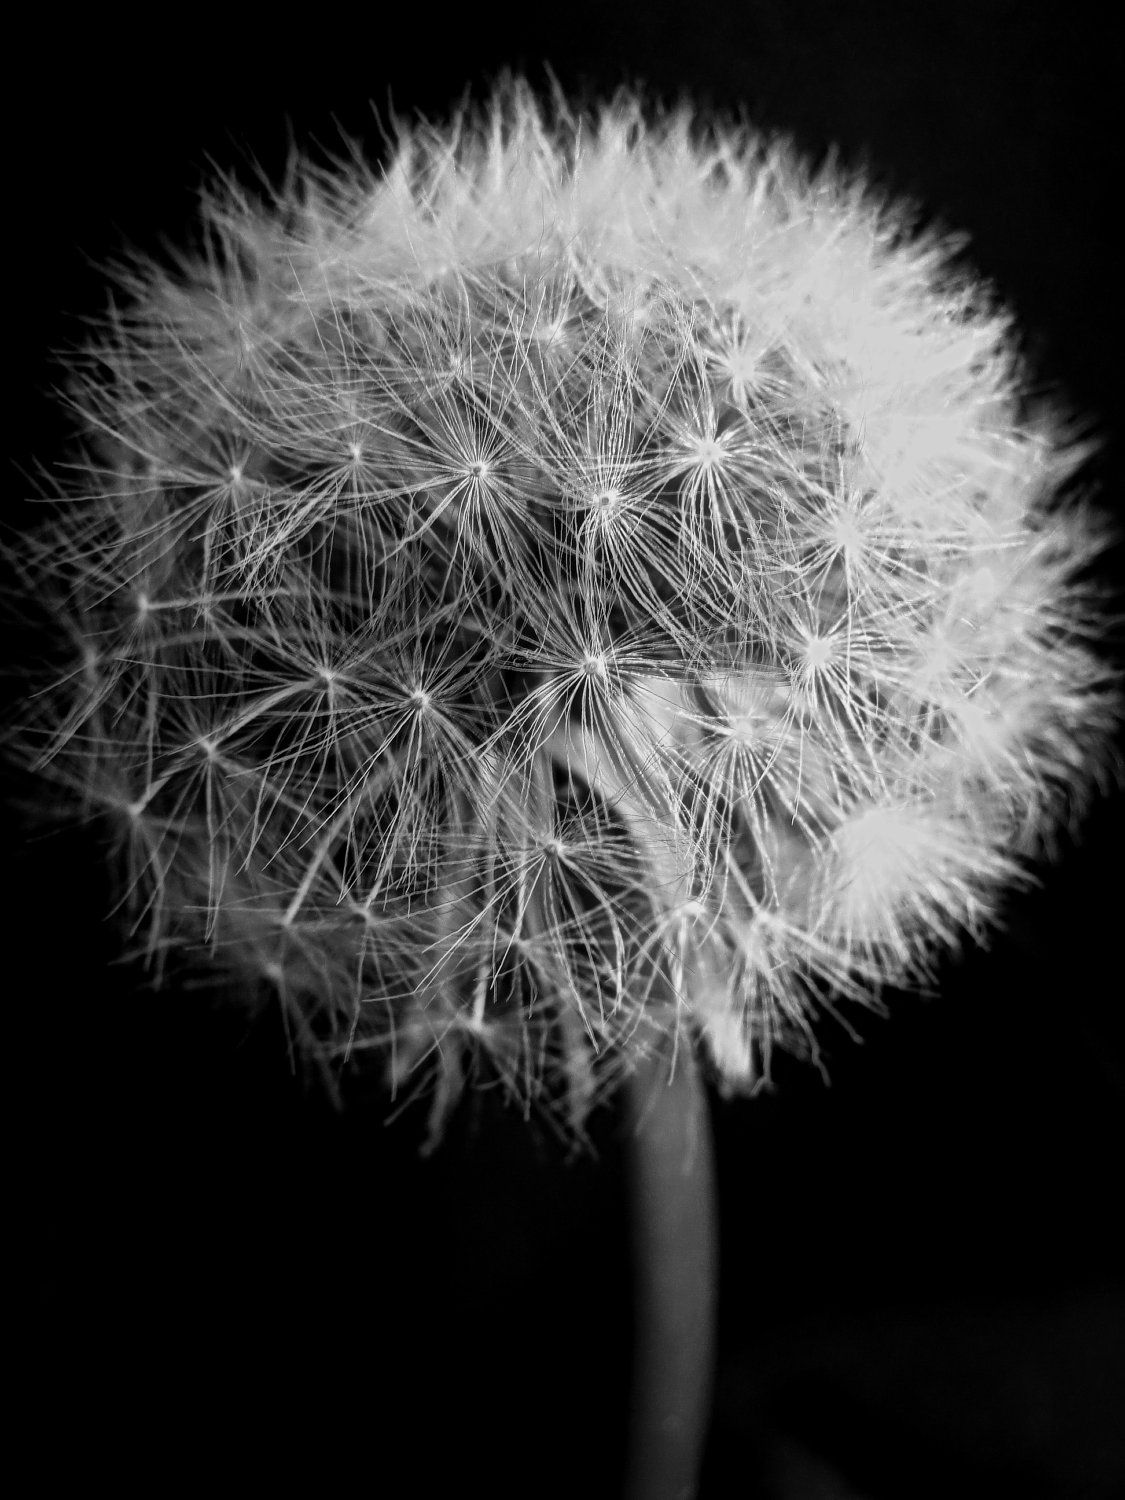 Black And White Dandelion Puff By Creamcityimagery On Etsy 20 00 White Dandelion Black And White Photography White Photography